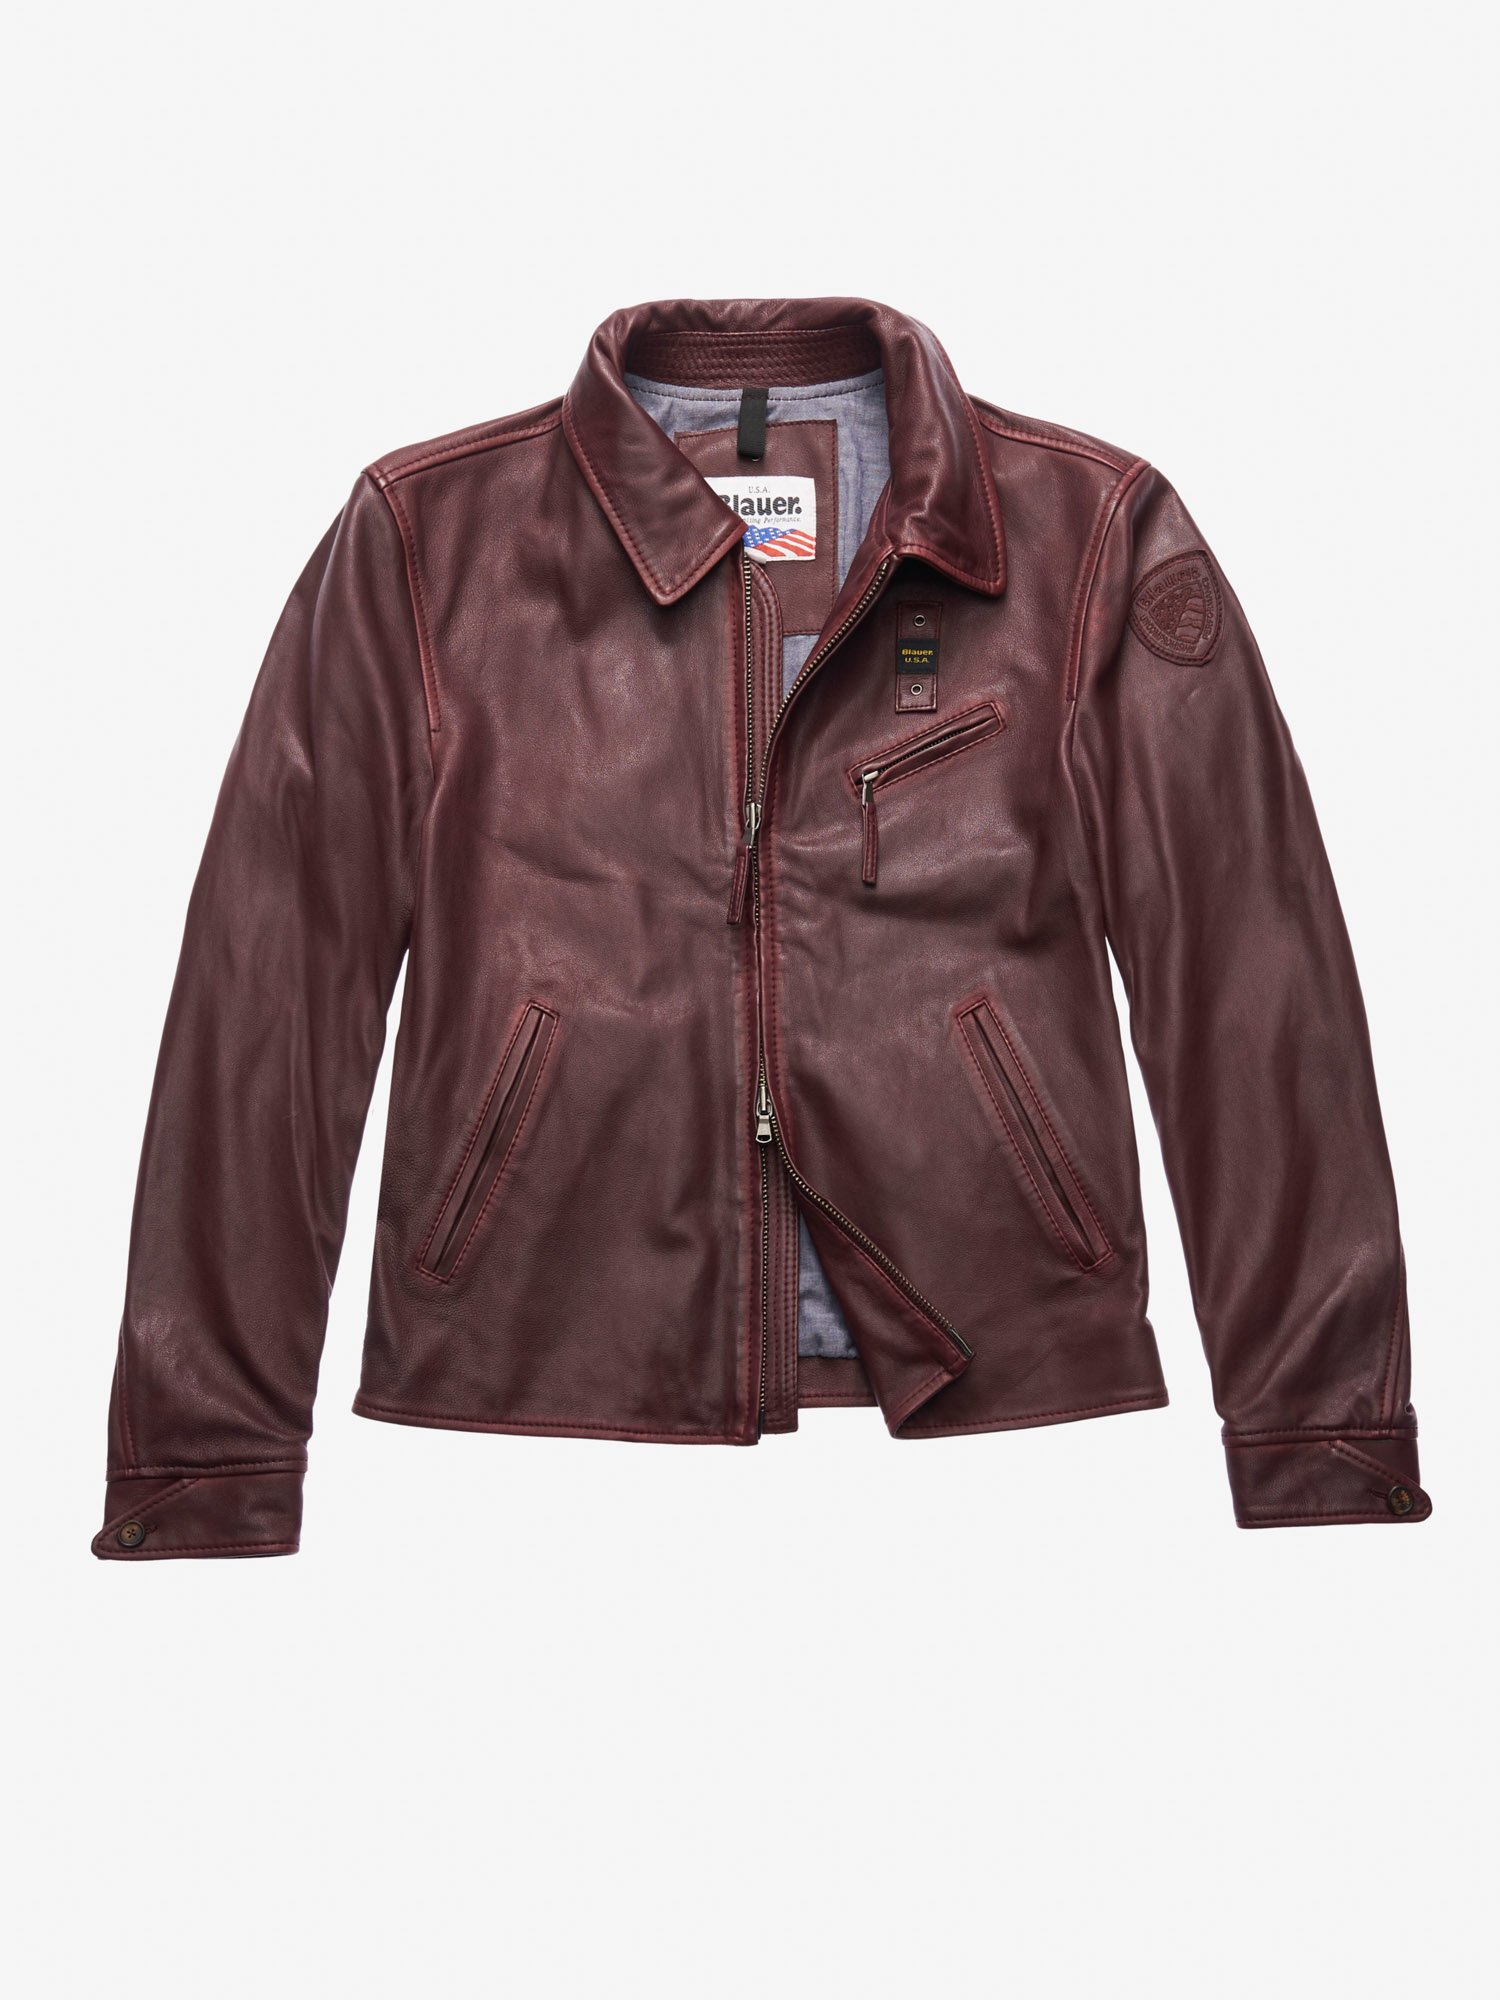 BROWN VINTAGE LEATHER JACKET - Blauer